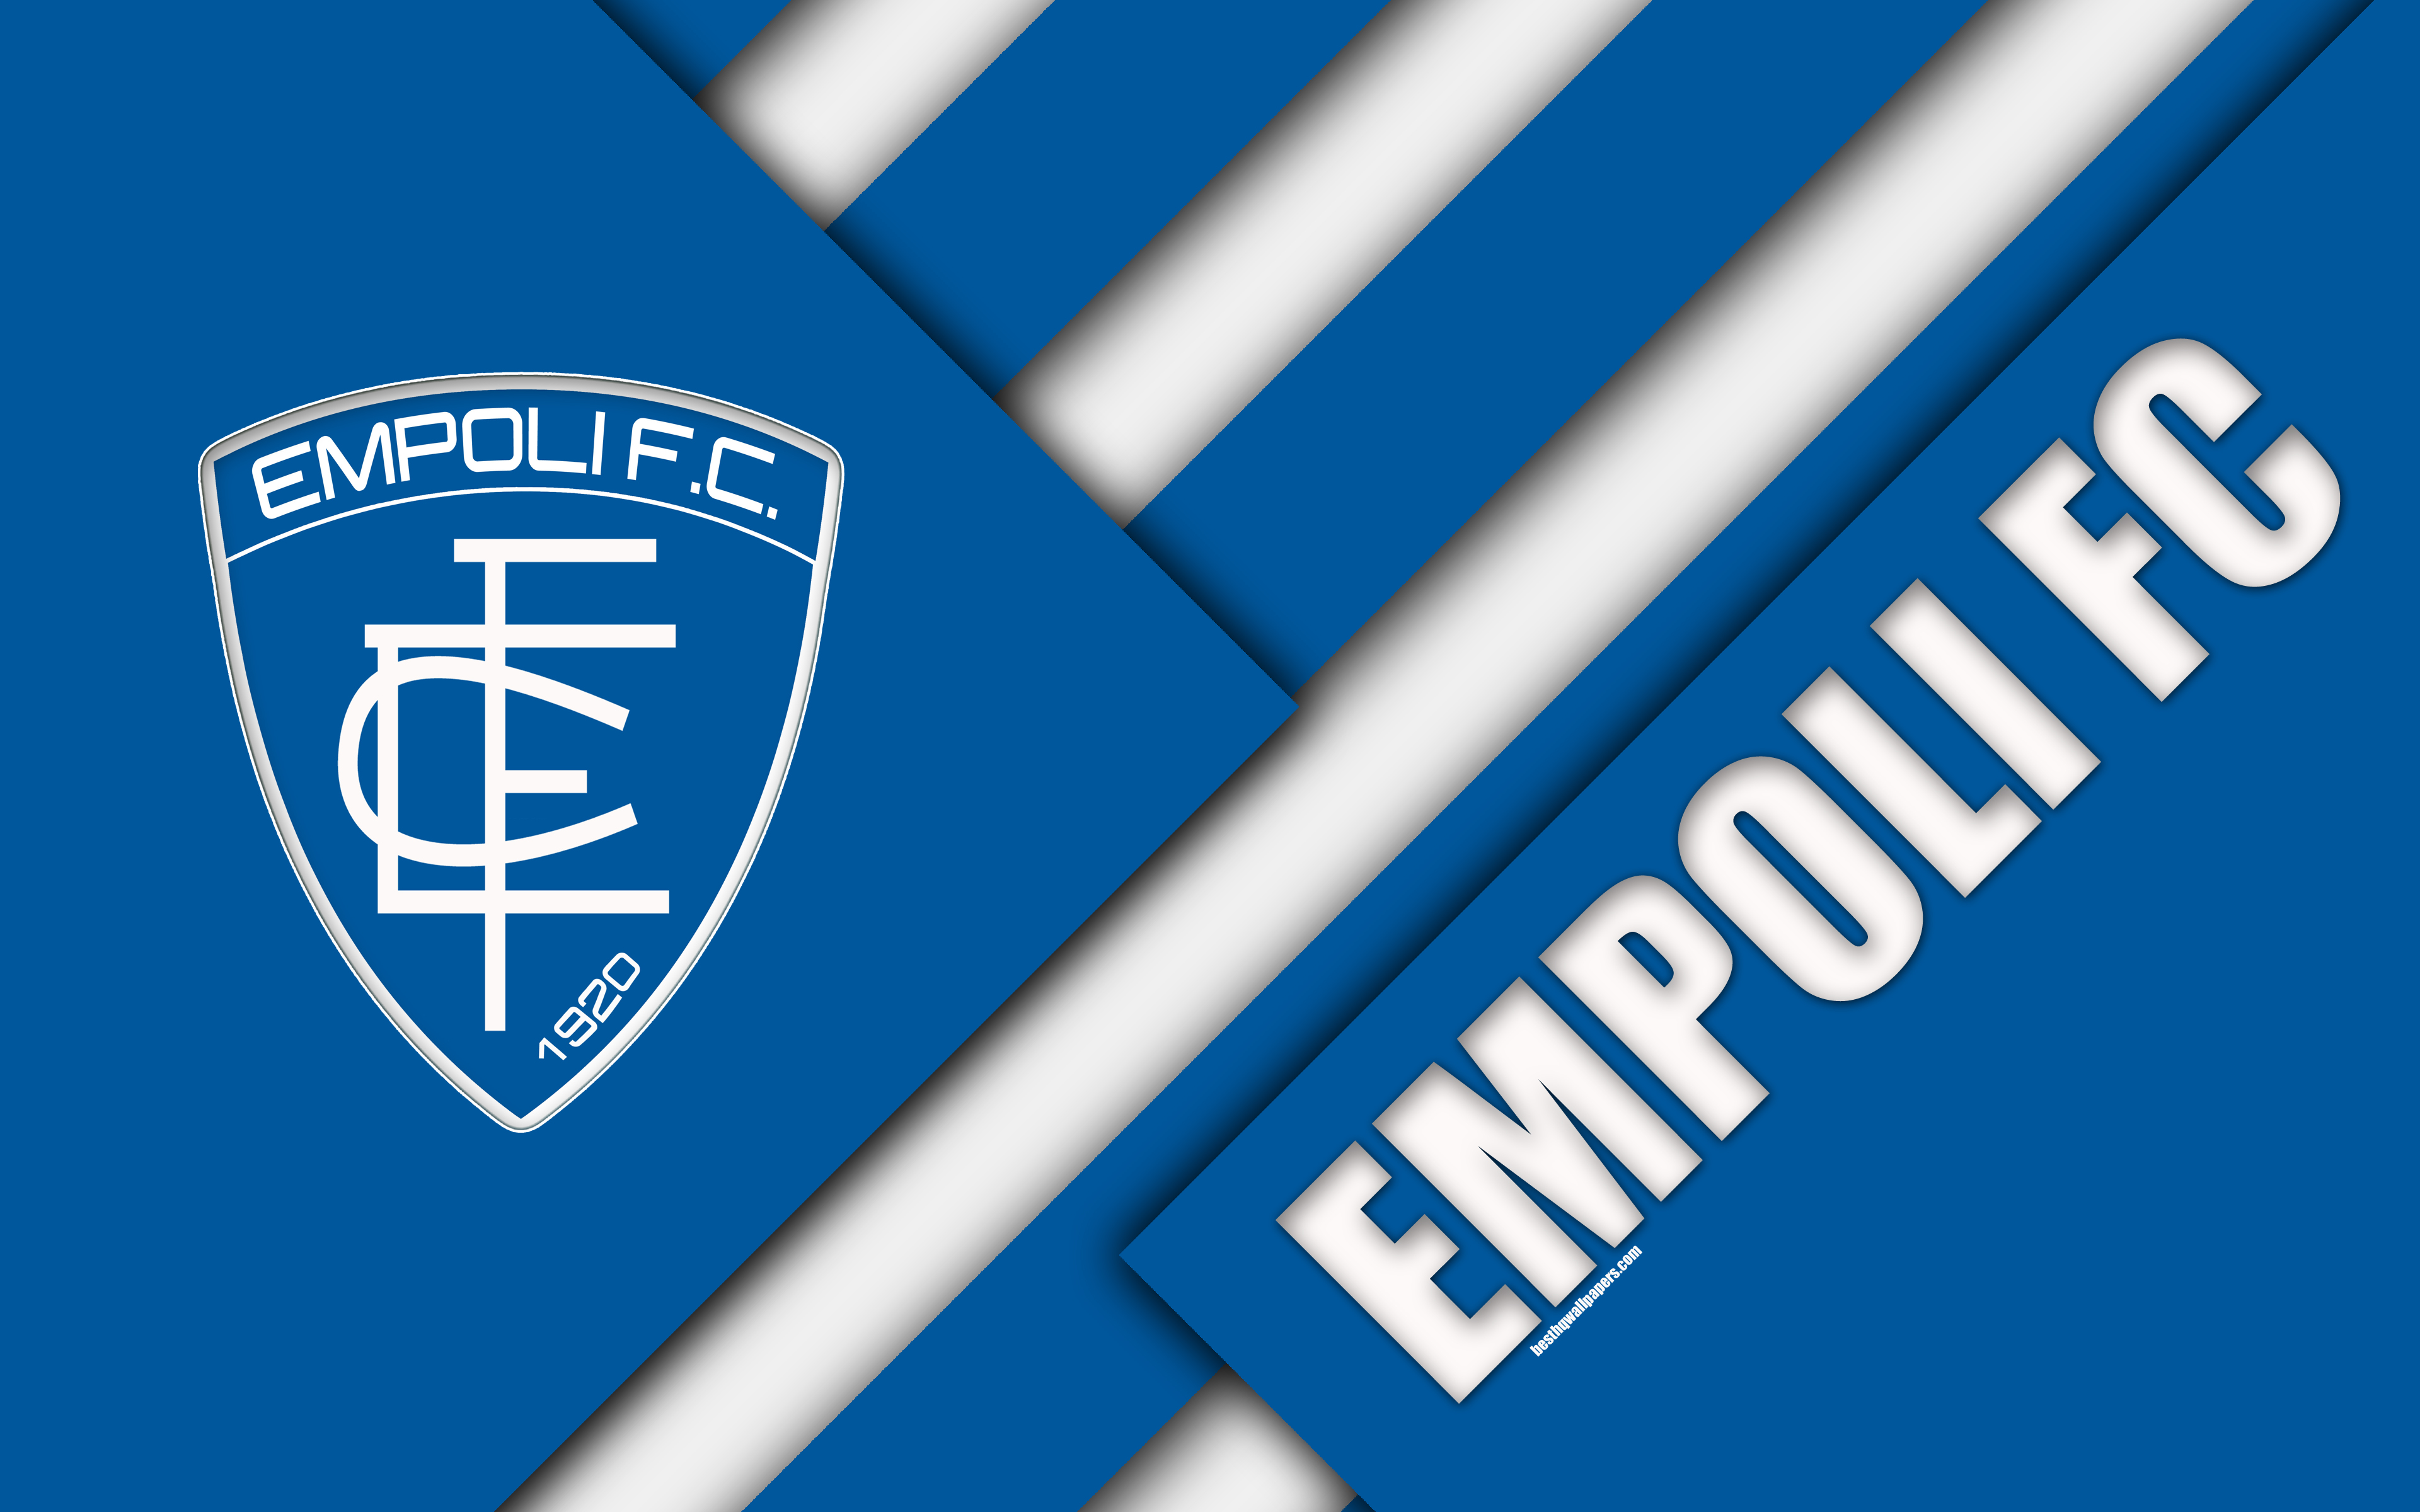 Download wallpapers Empoli FC, 4k, material design, logo, blue white